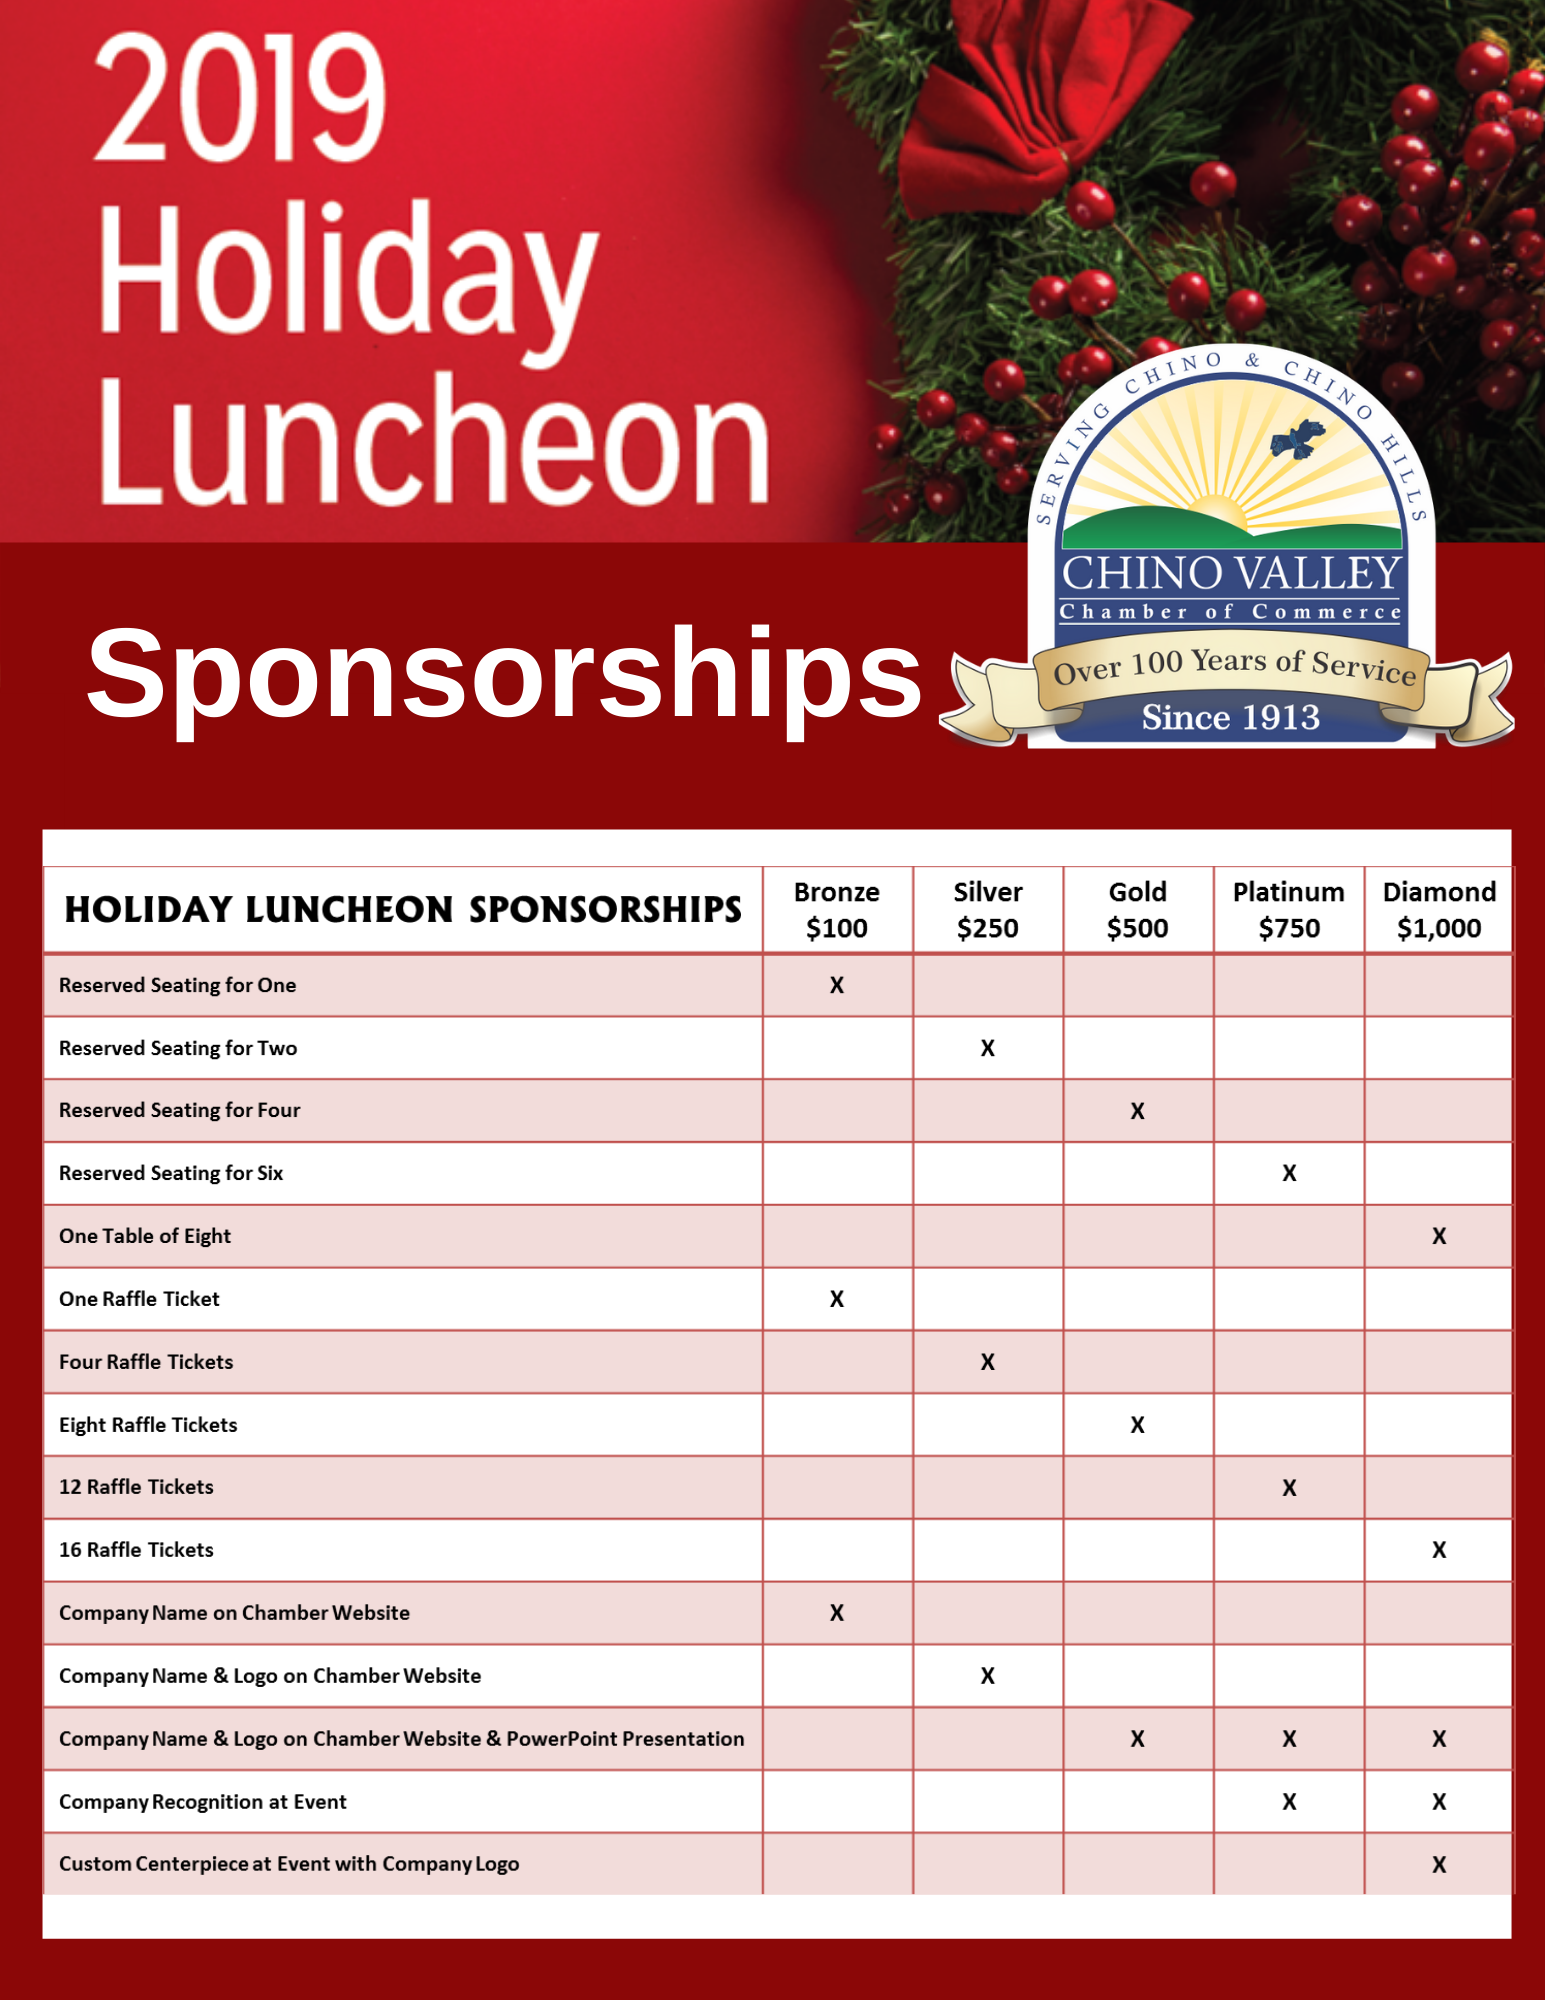 2019 Holiday Luncheon Sponsorships